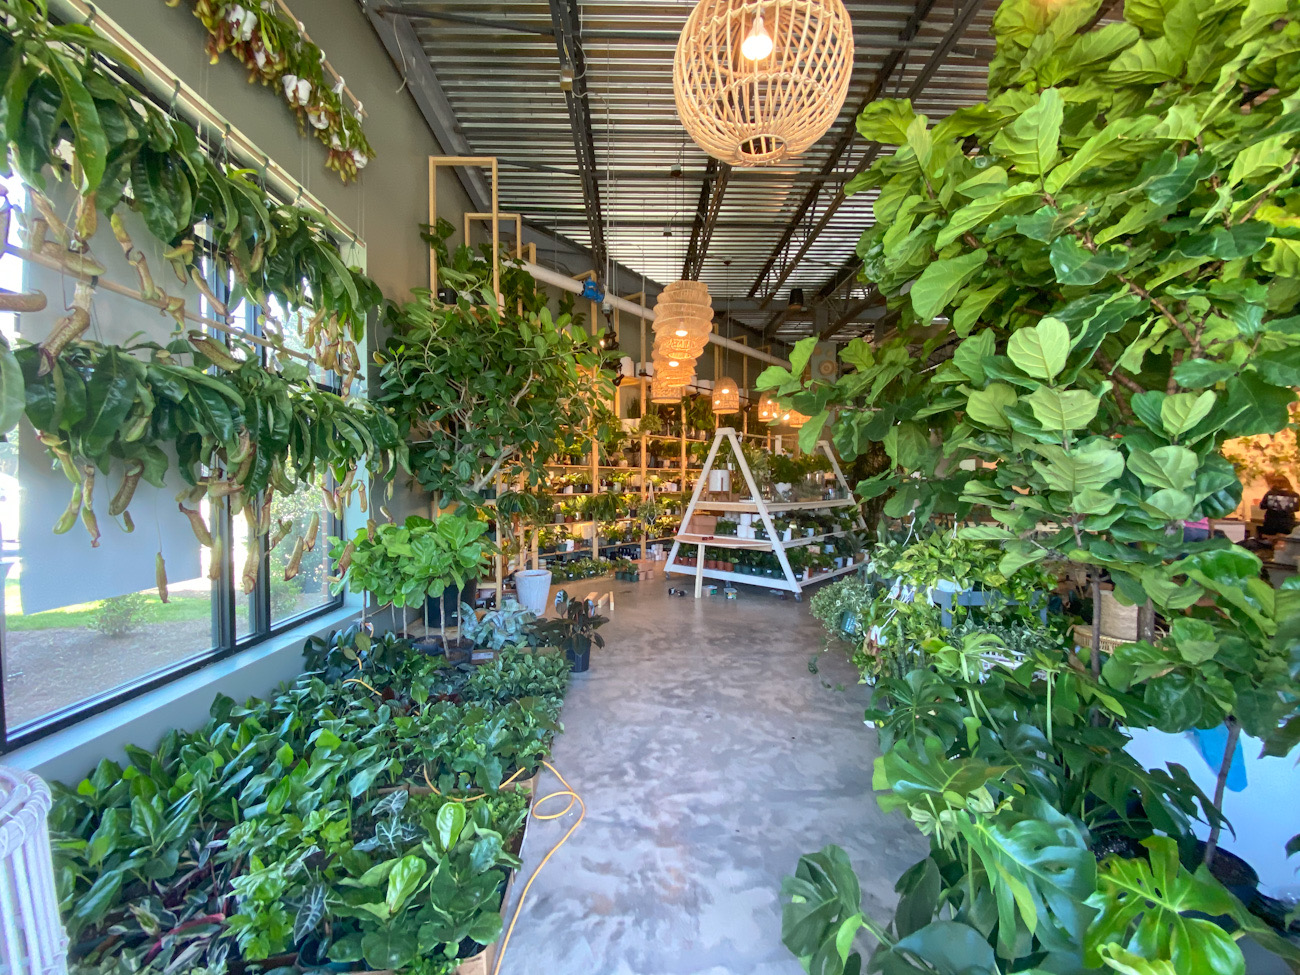 Trendy plant store PlantBar is opening this Saturday in Dilworth